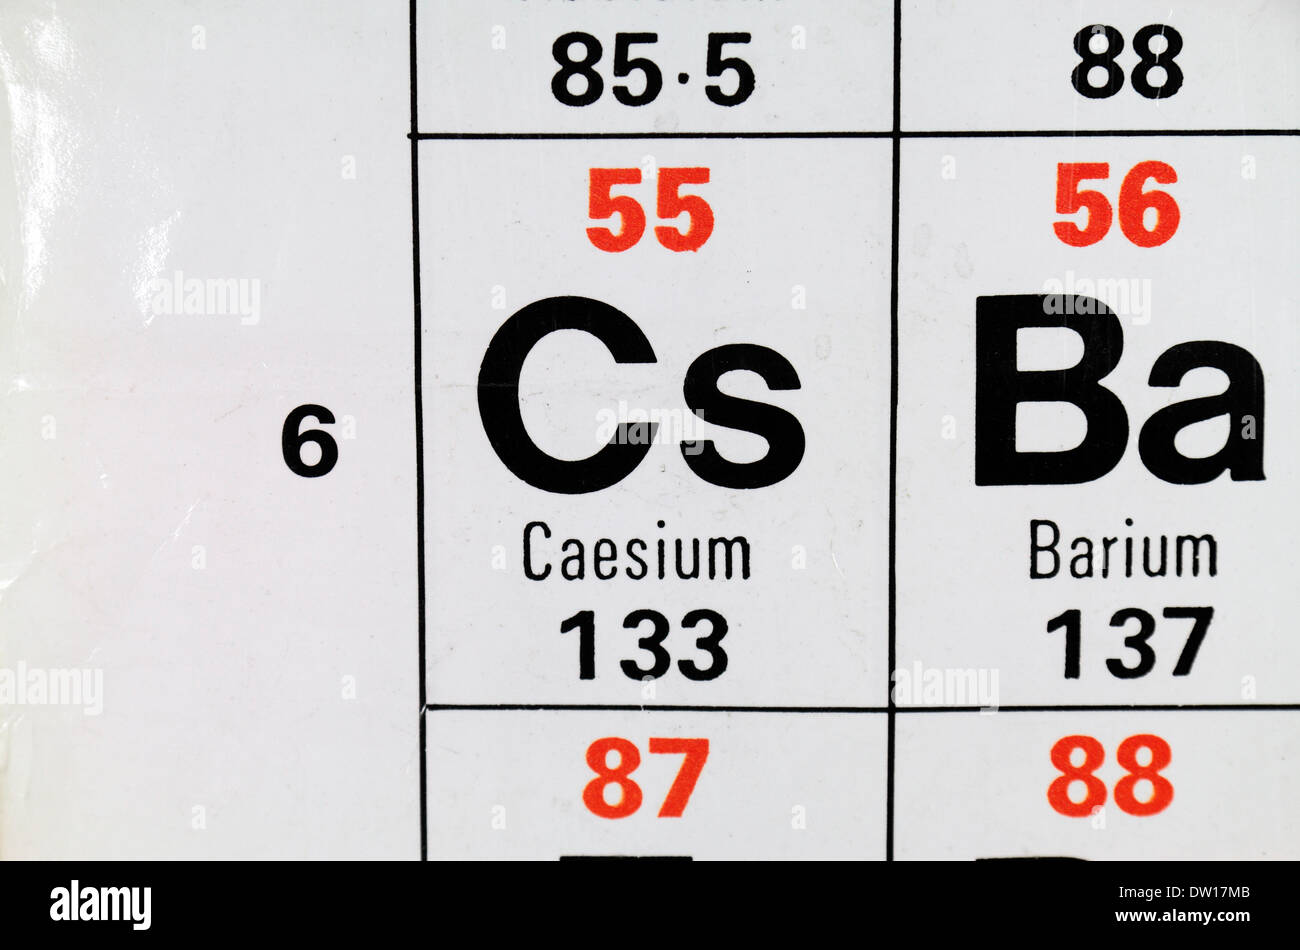 Caesium cs as it appears on the periodic table stock photo caesium cs as it appears on the periodic table urtaz Gallery